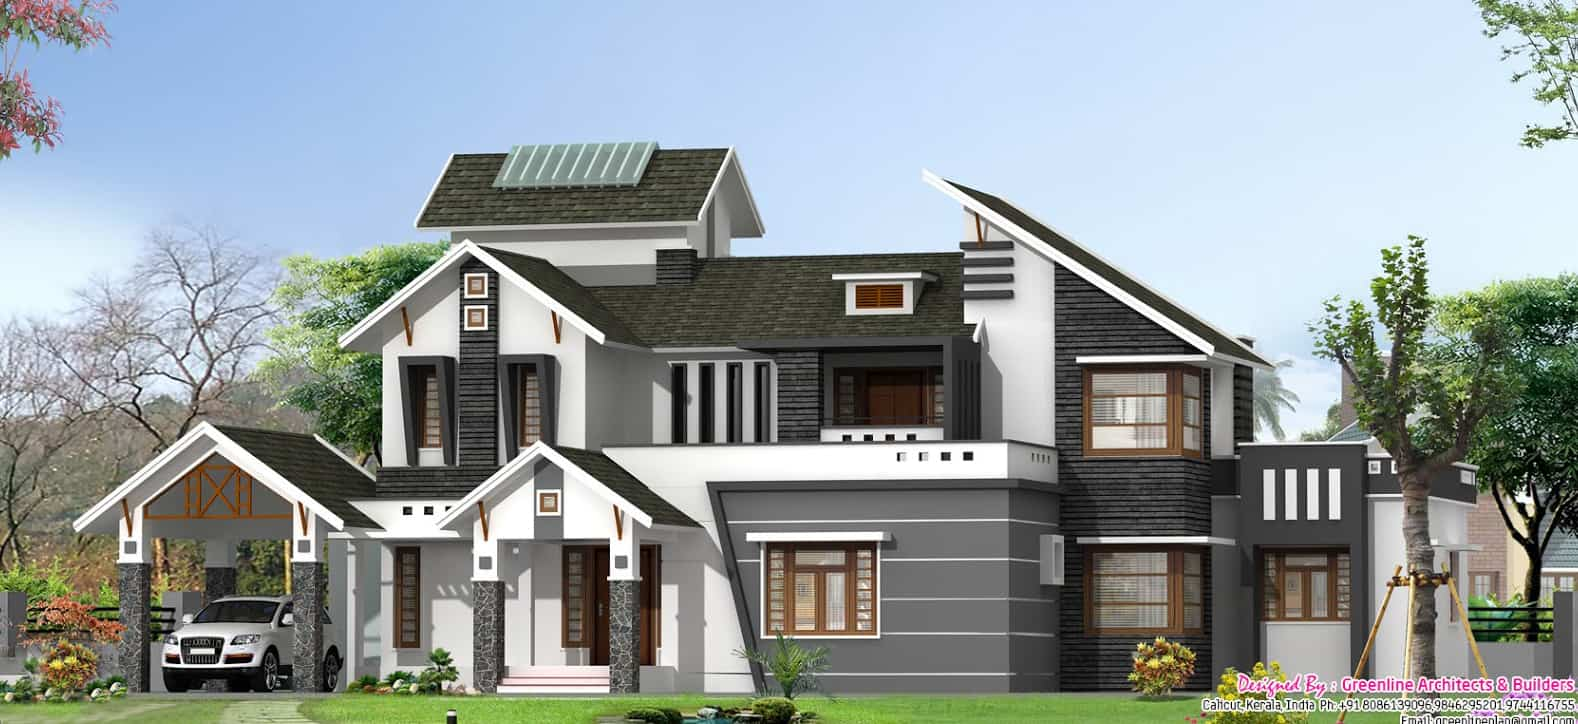 Unique house designs keralahouseplanner for Unique modern home plans